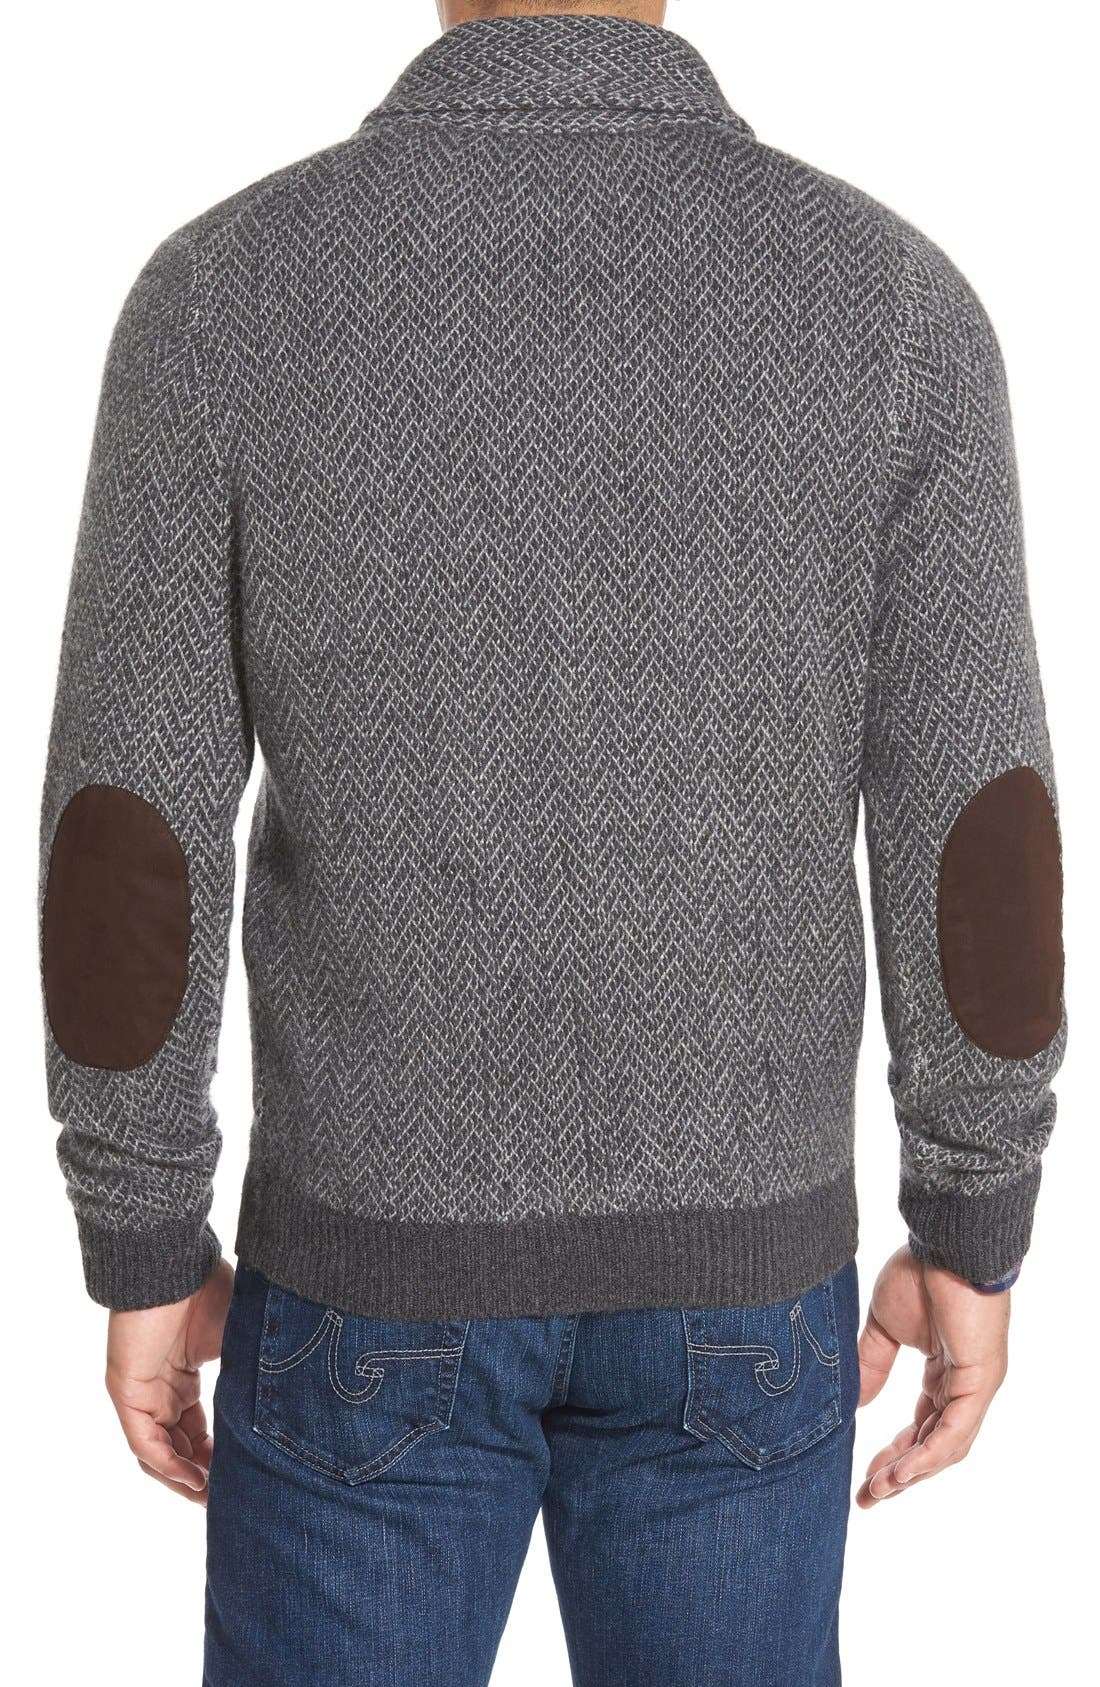 Alternate Image 2  - John W. Nordstrom® Shawl Collar Cashmere Sweater (Regular & Tall)